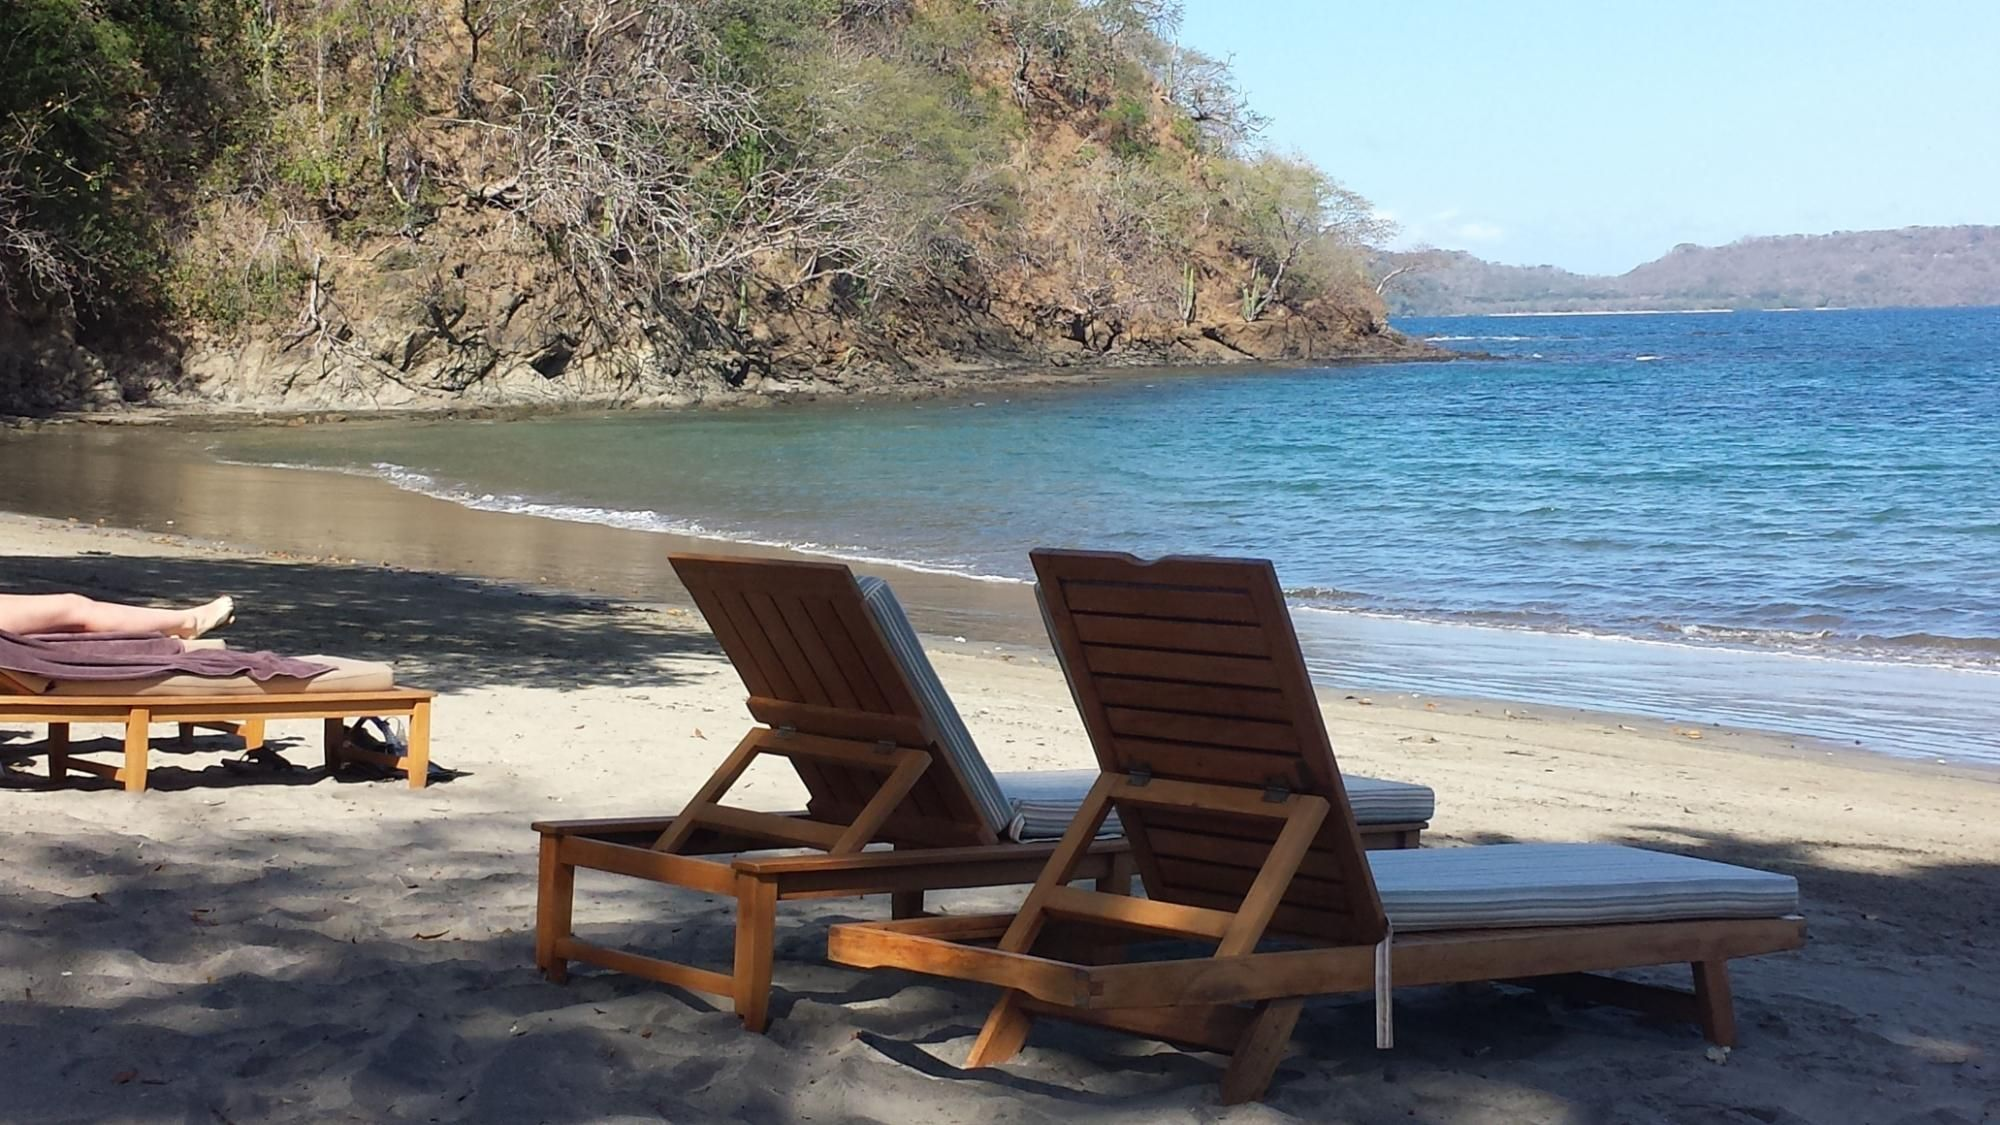 Book Secrets Papagayo Costa Rica, Gulf of Papagayo on TripAdvisor: See 134 traveller reviews, 305 candid photos, and great deals for Secrets Papagayo Costa Rica, ranked #4 of 14 hotels in Gulf of Papagayo and rated 4.5 of 5 at TripAdvisor.